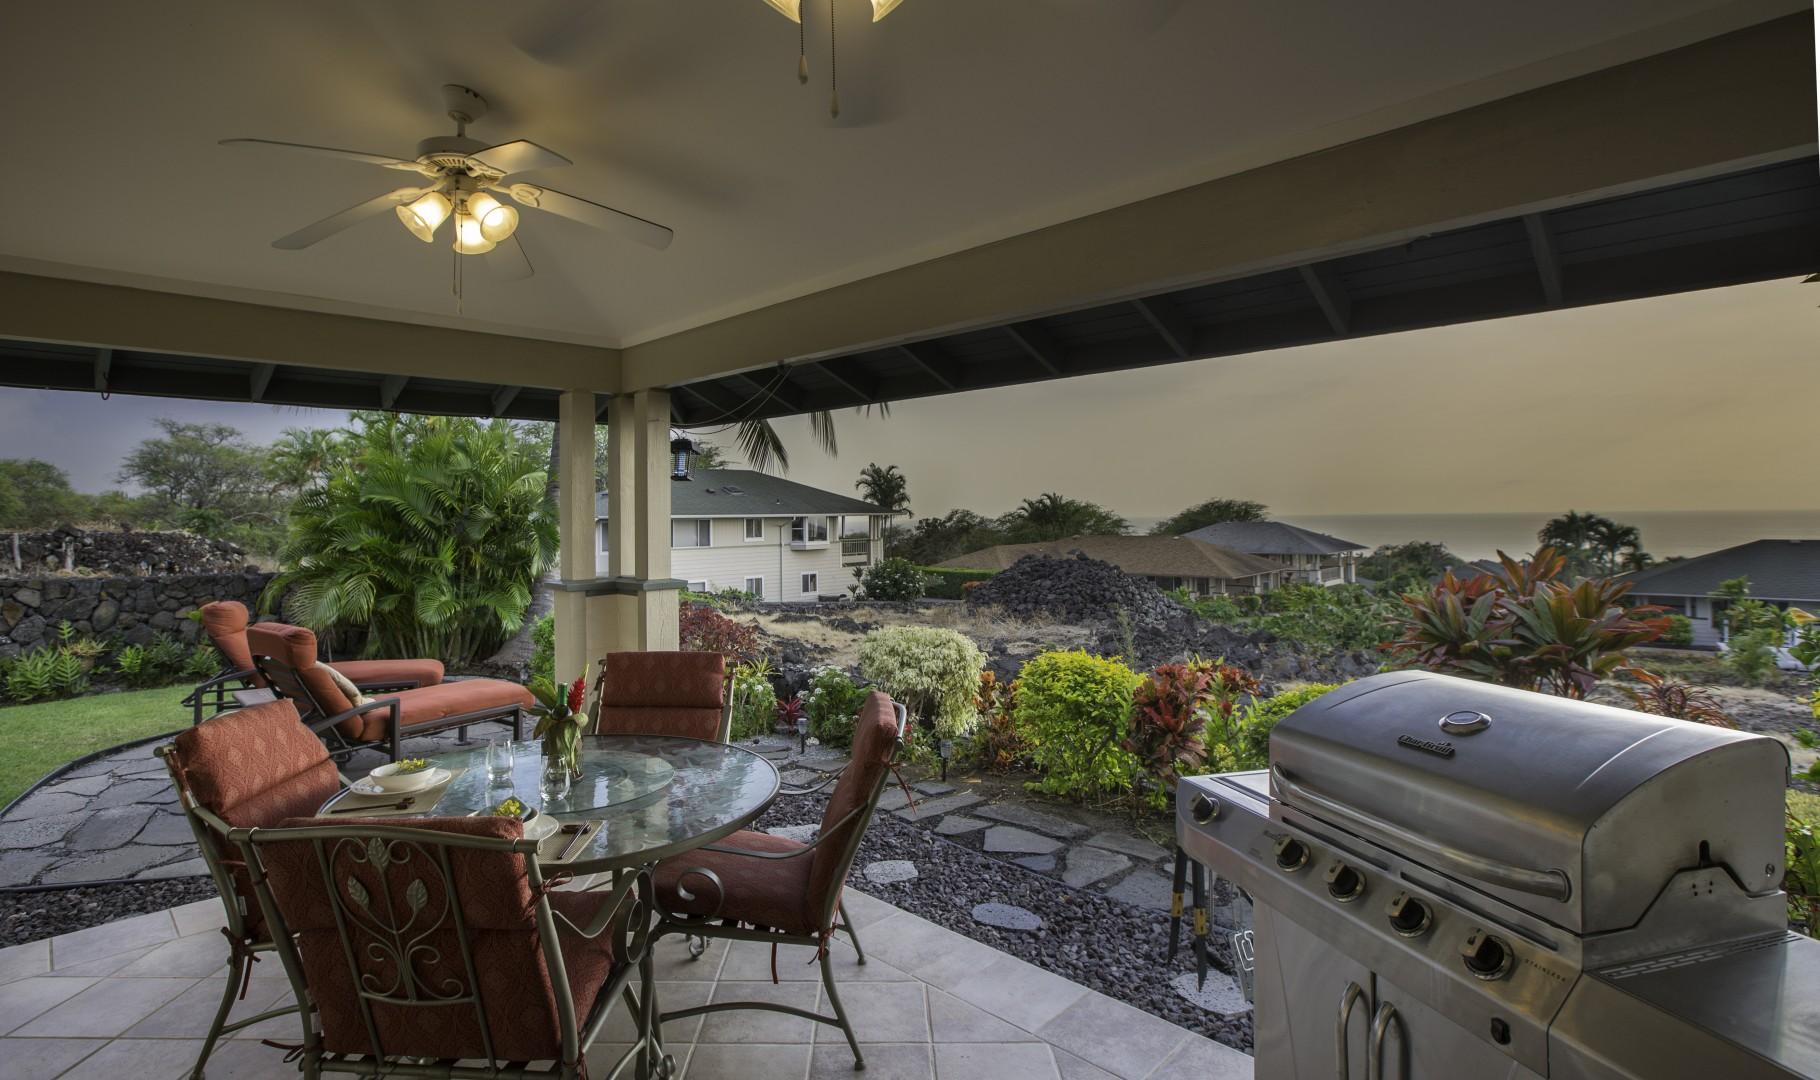 Breezy outdoor dining, perfect for grilling!